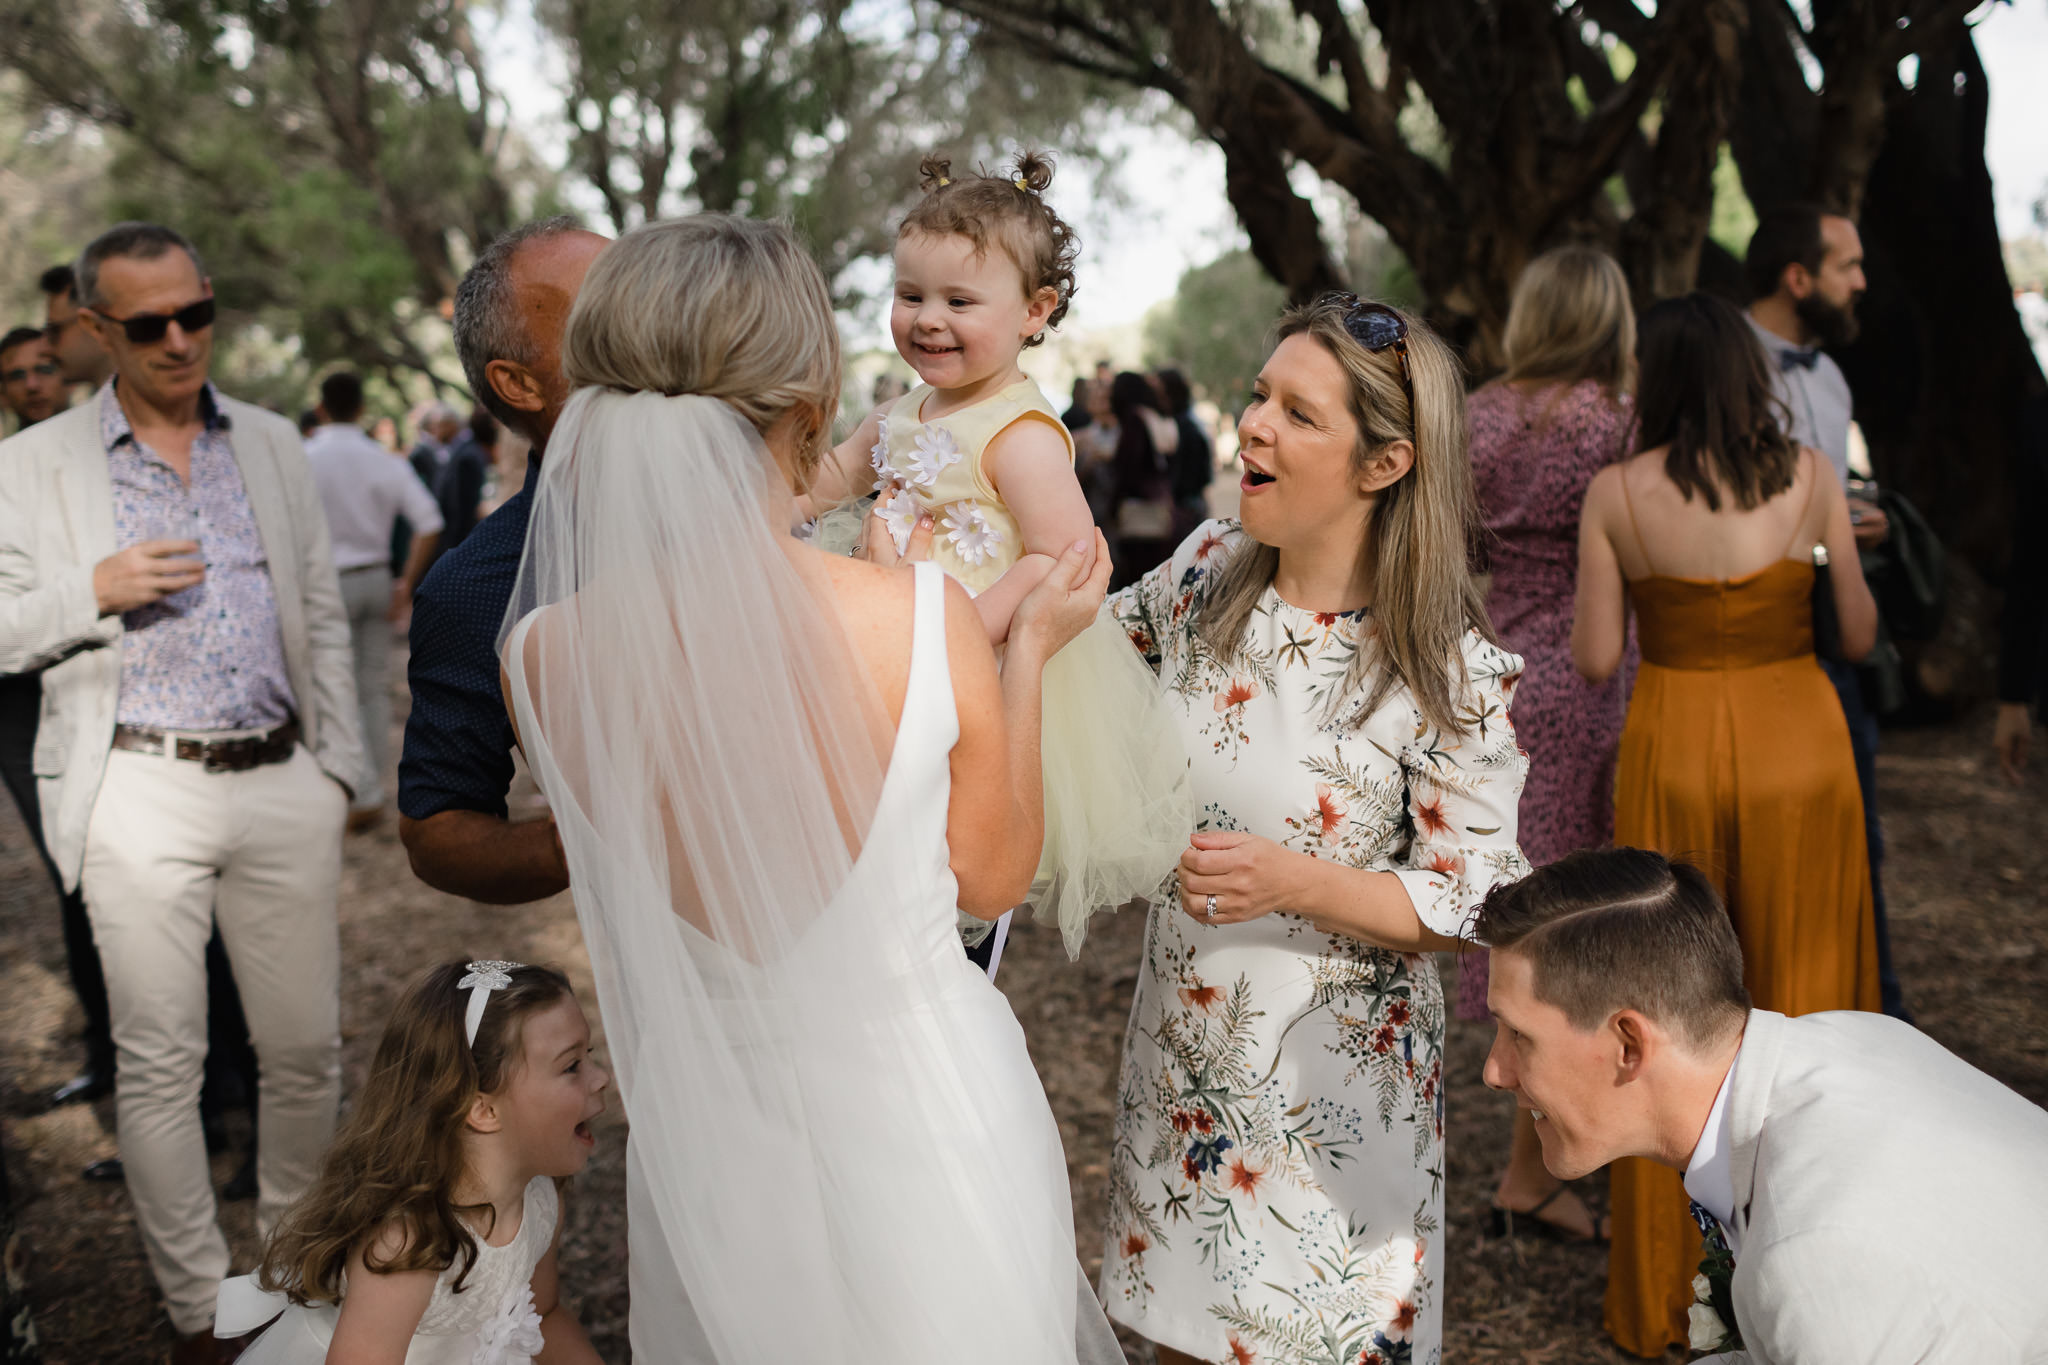 Bride hugging friend's small child at wedding while groom plays peekaboo with flowergirl